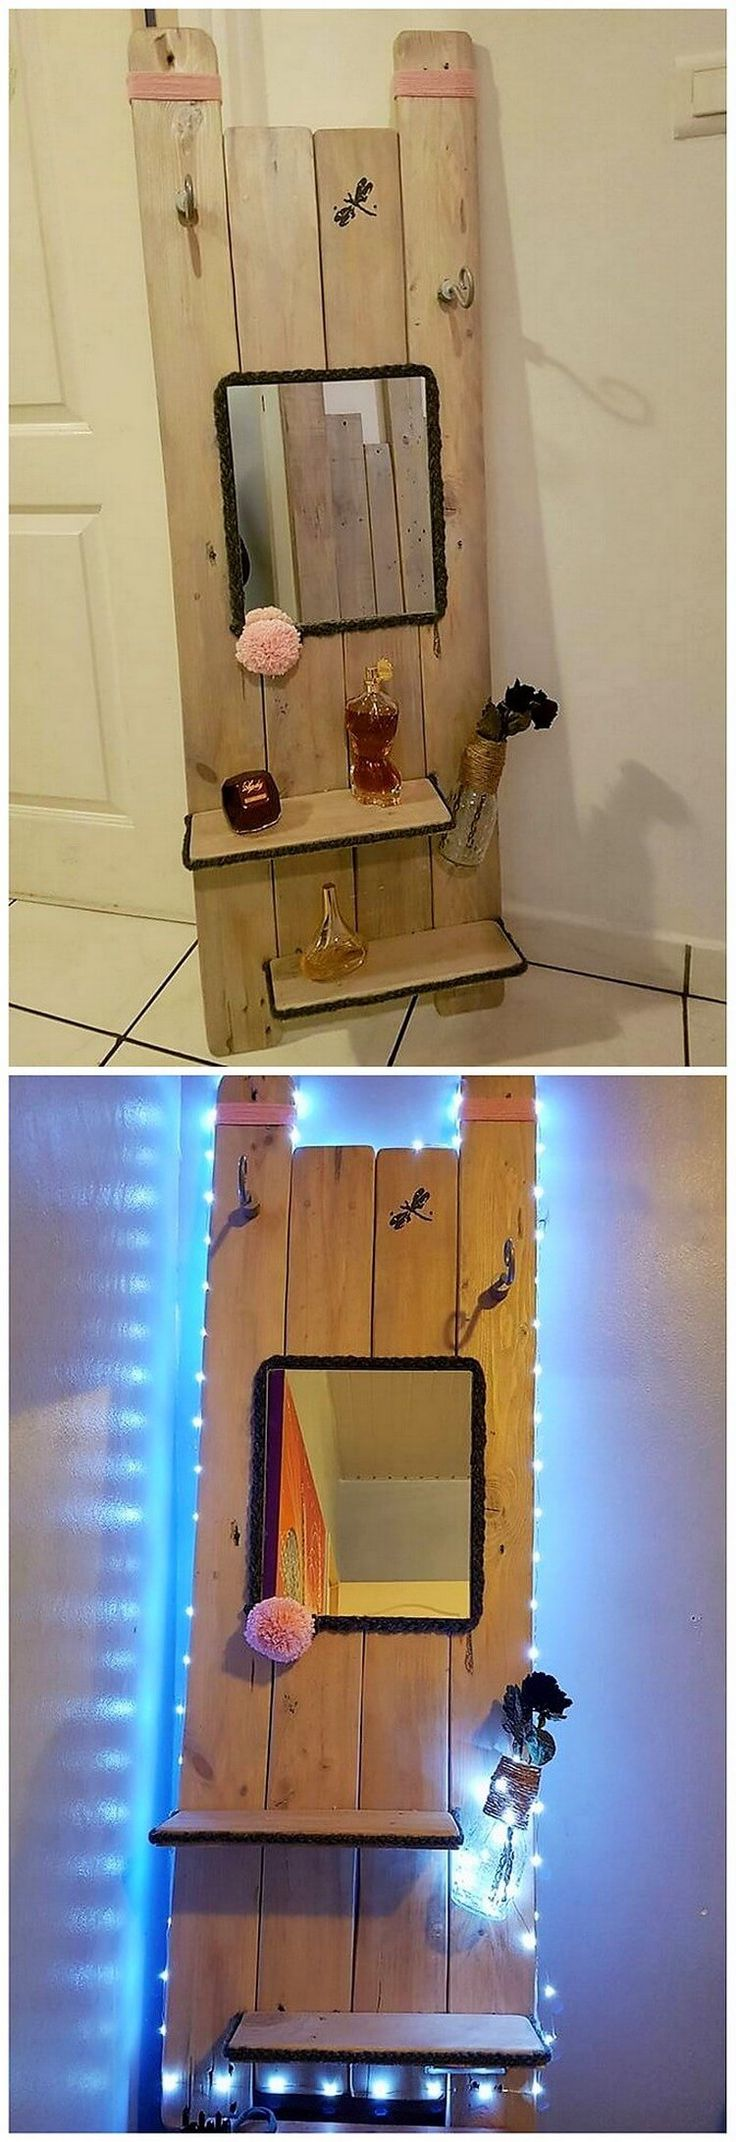 This wood pallet idea has been beautifully making you offer out with the access of the stylish house mirror frame. It would look so lovely as it would be attached along with it. You should try with this idea because it would give out a warm welcoming impression to the guests.